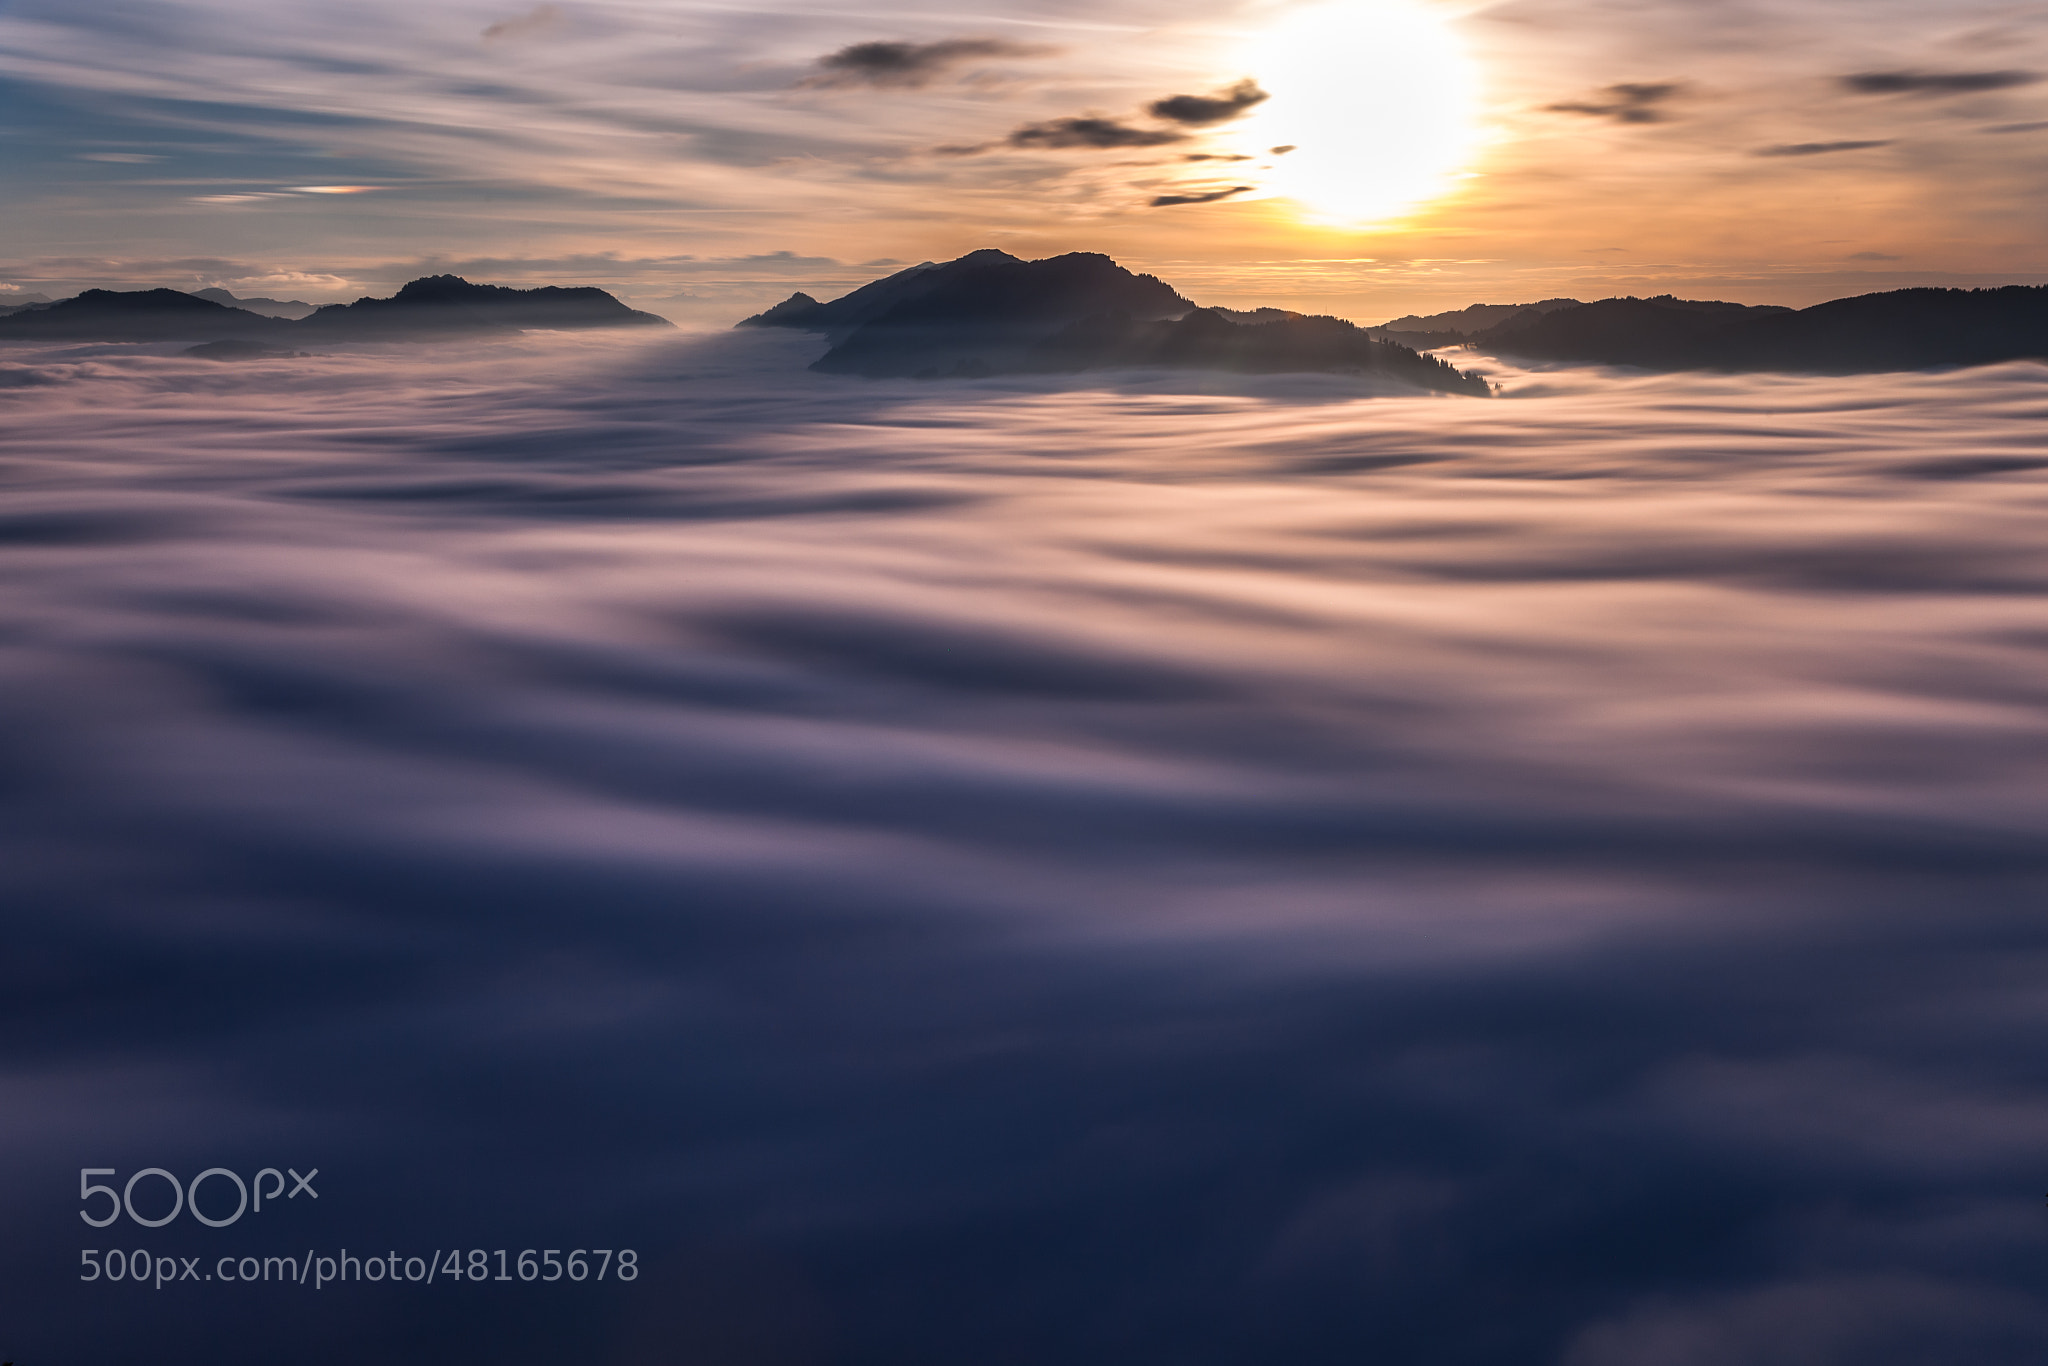 Photograph Sea of Clouds by Alex Fuchs on 500px